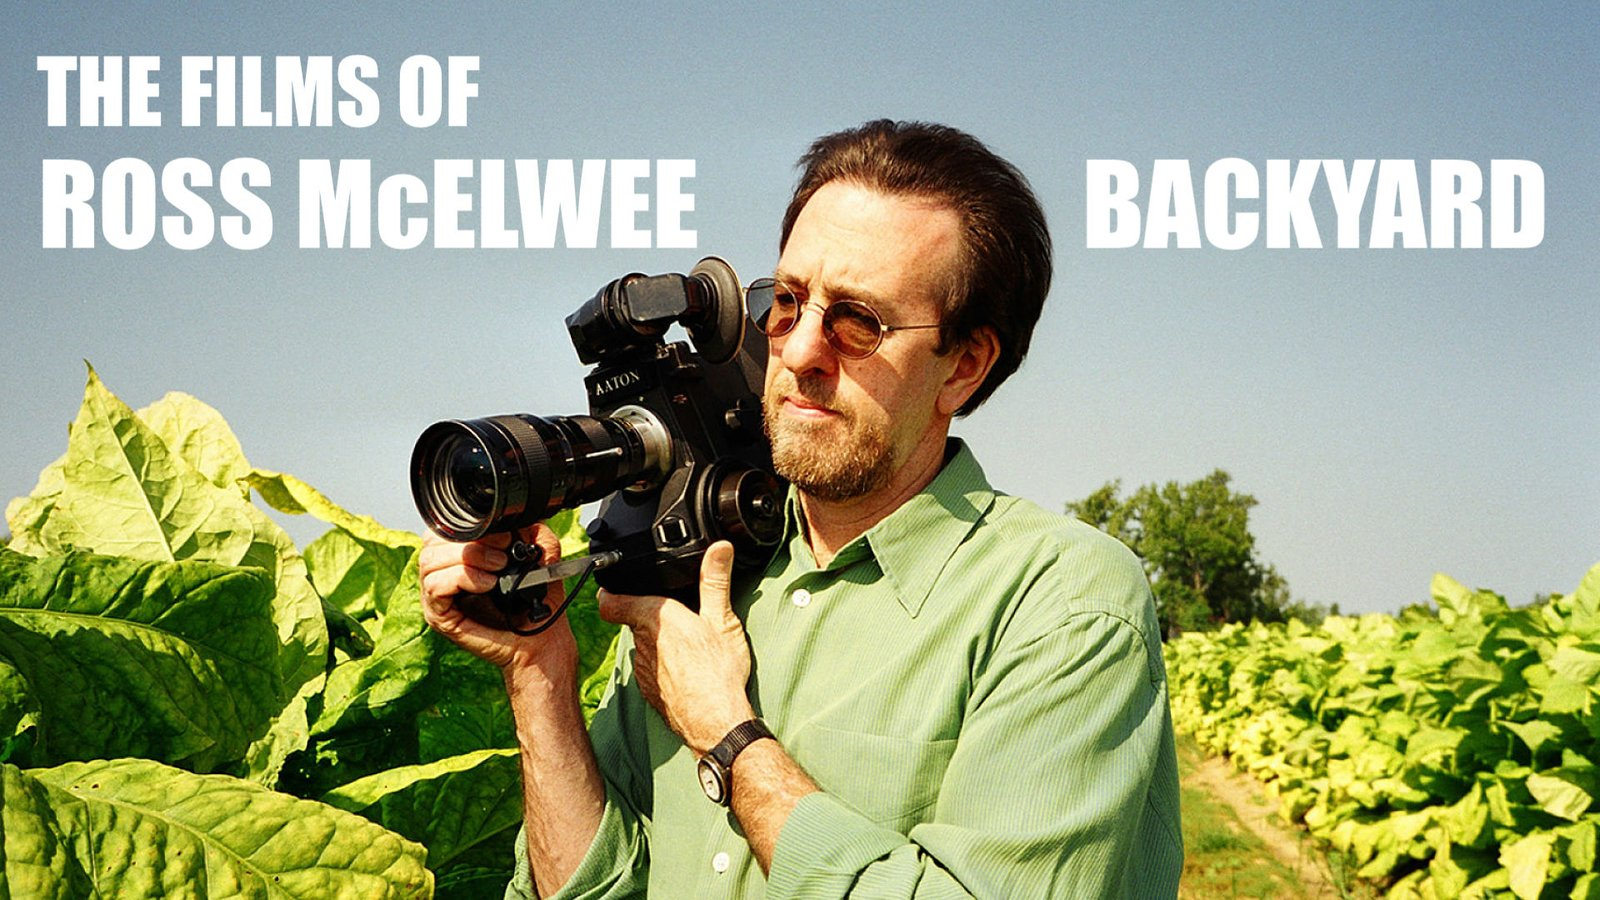 Backyard - Ross McElwee Turns the Camera on His Family